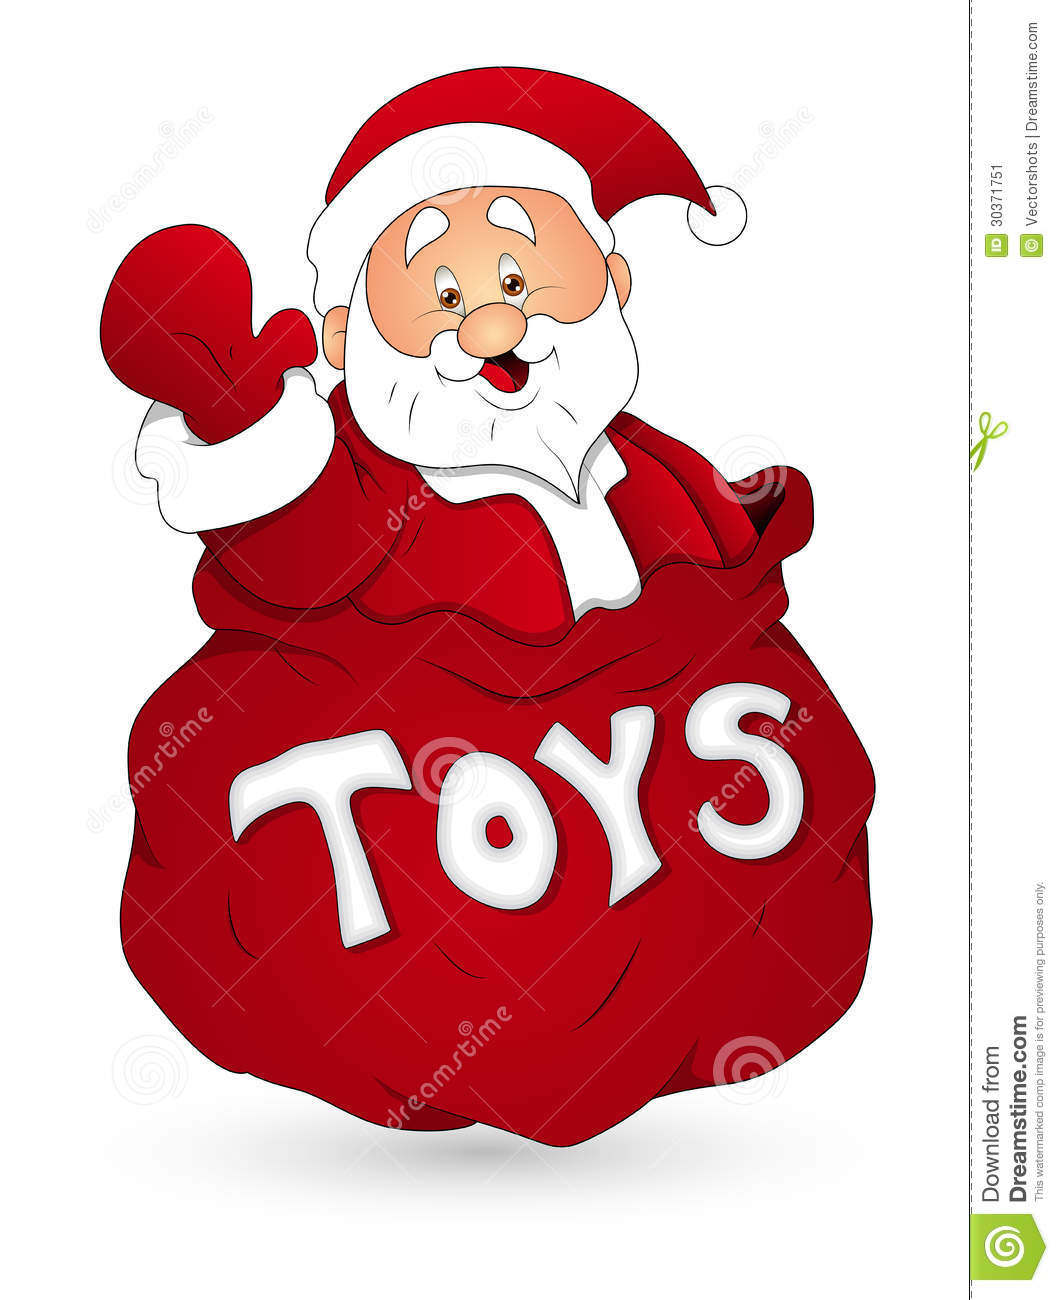 Christmas Toys Cartoon : Santa with toy bag christmas vector illustration stock